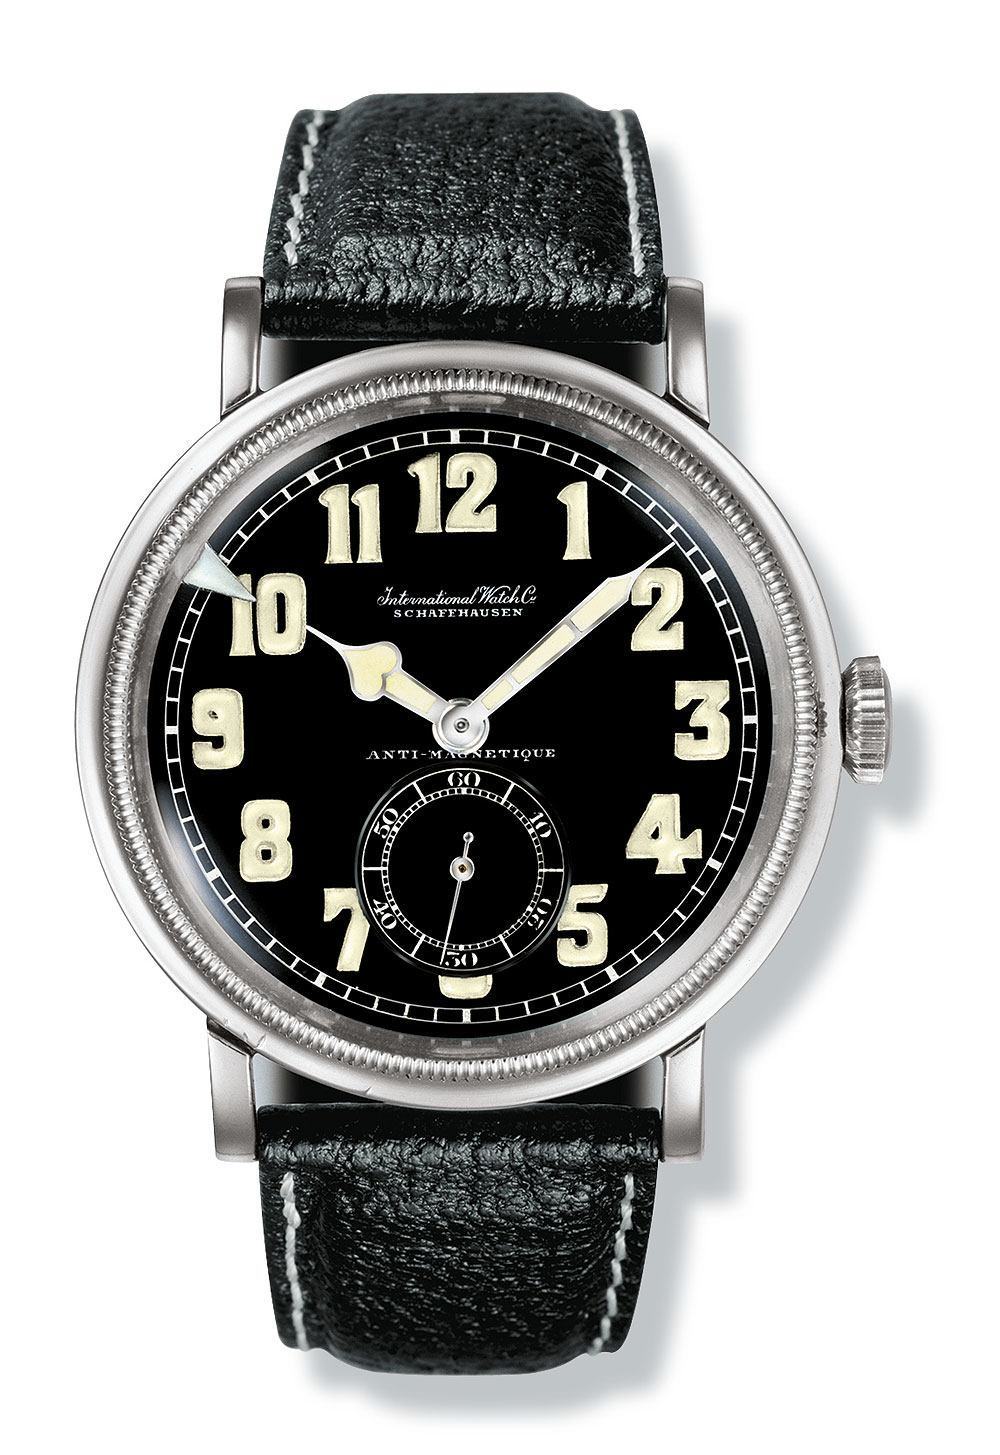 Time Flies: 9 Historic IWC Pilot's Watches › WatchTime